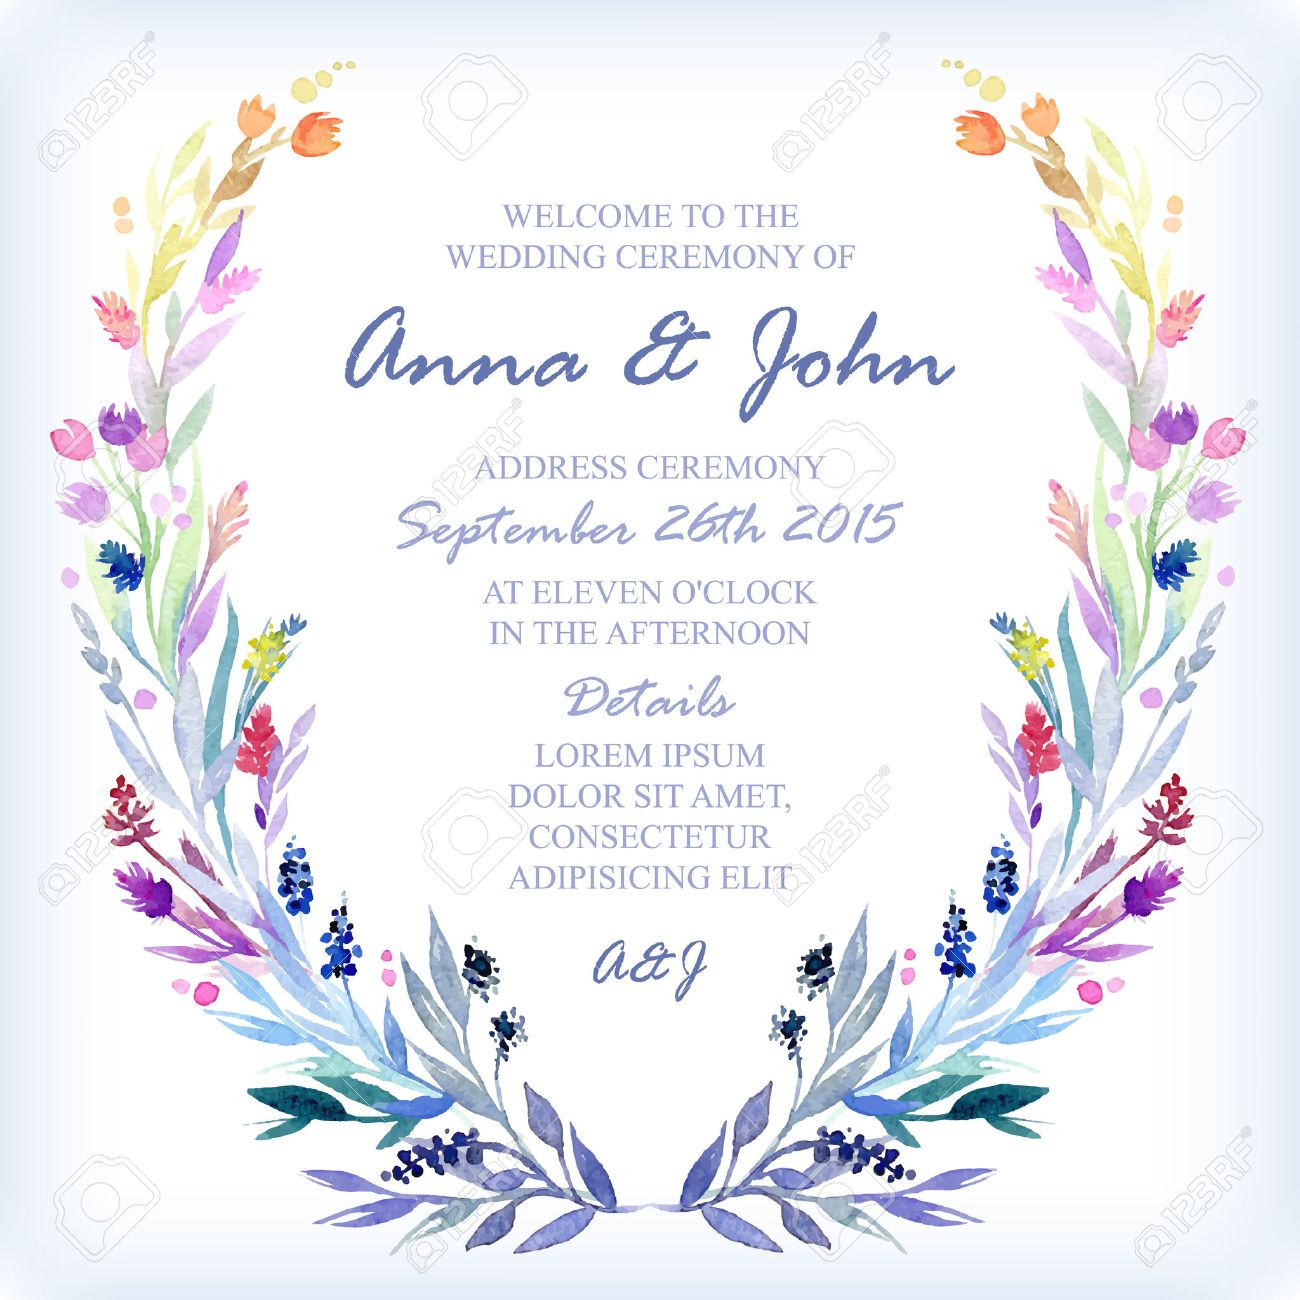 Wedding Invitation Design Template With Watercolor Floral Frame. Vector  Background For Special Occasions U0026 Life